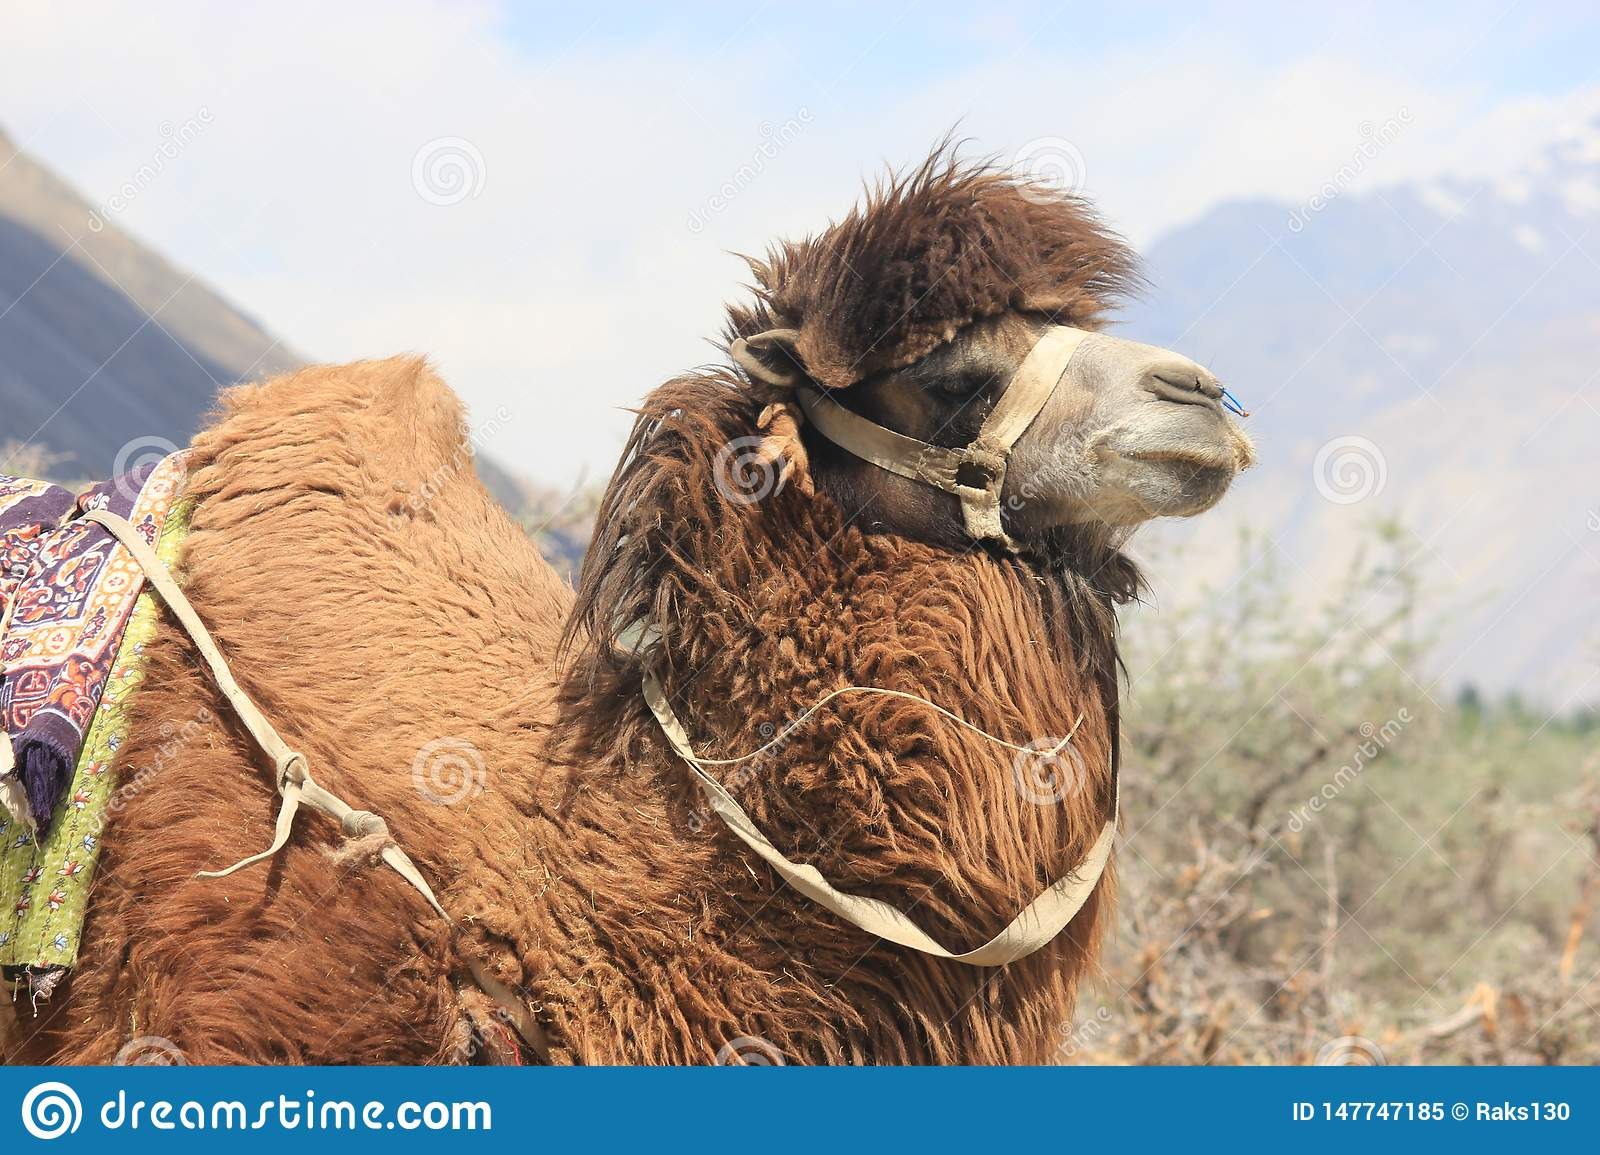 Bactrian Camel in Ladakh